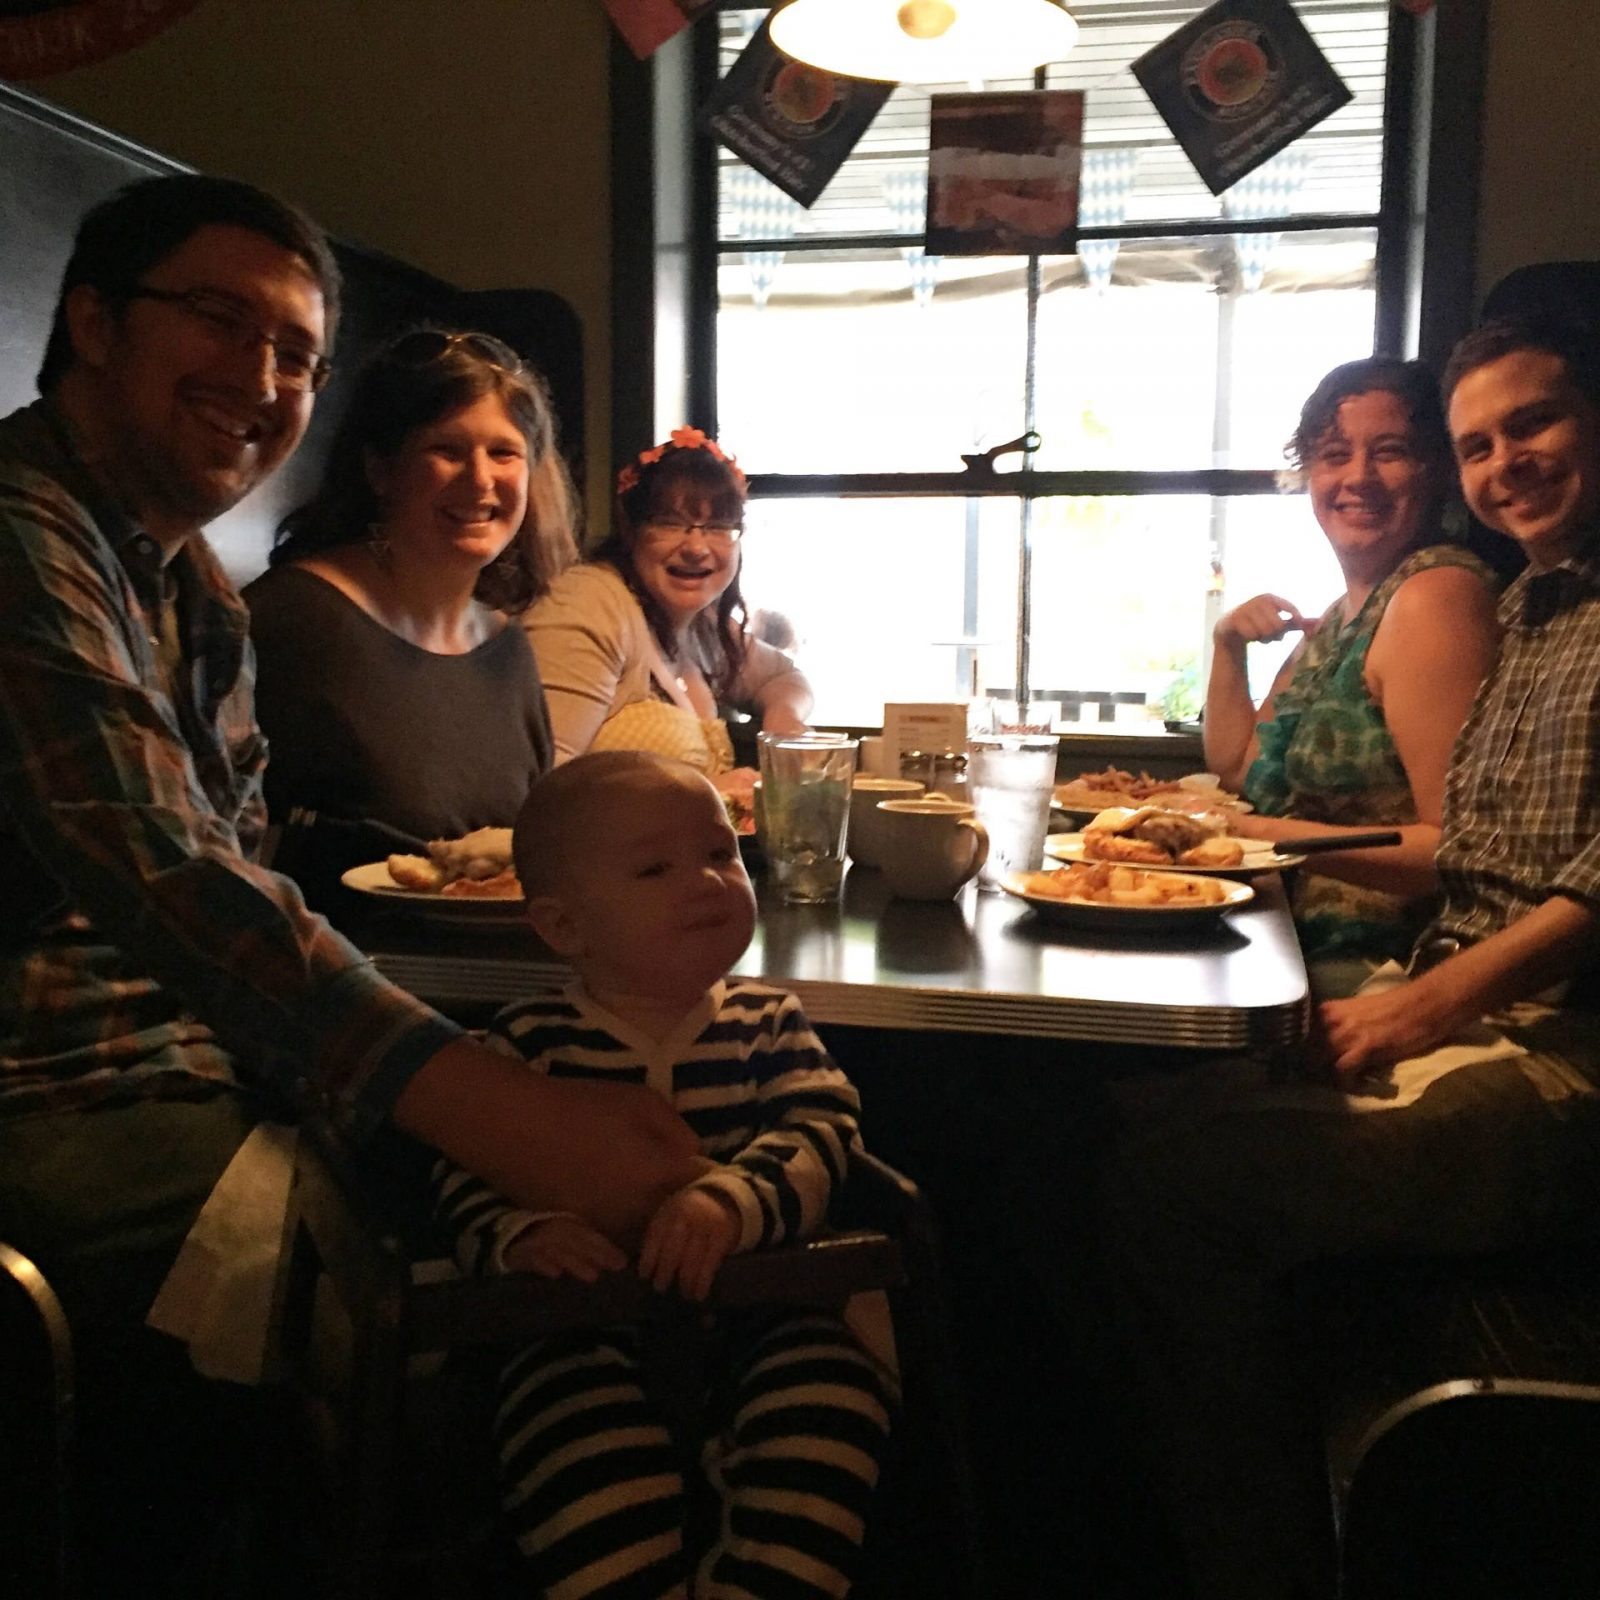 Brunch at Milltown, Carrboro with my friends